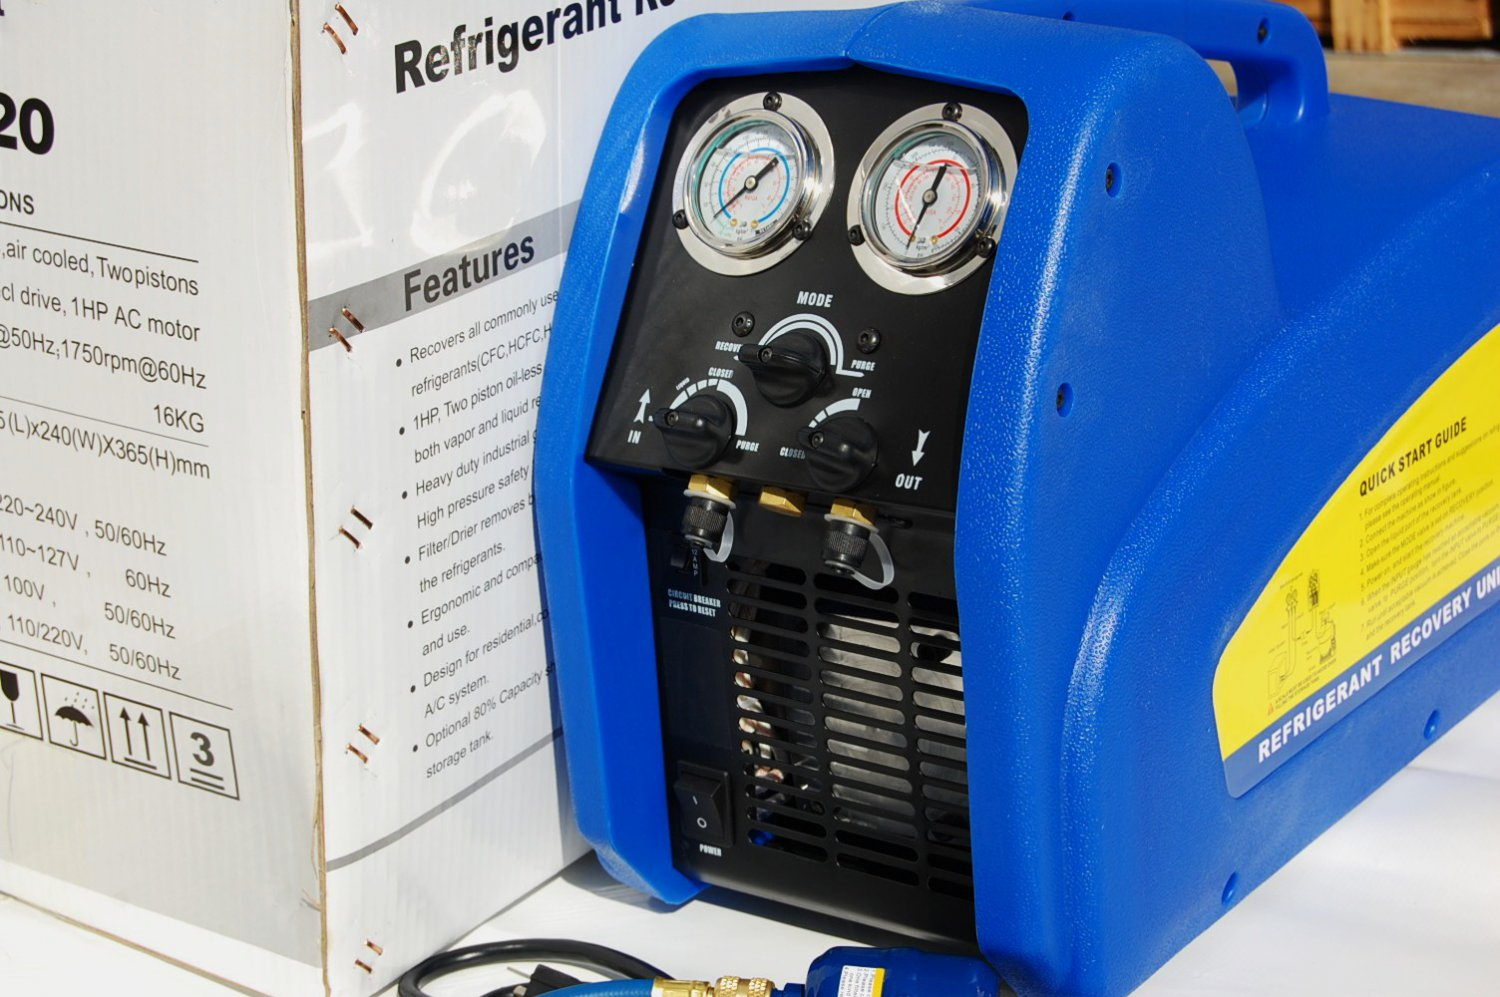 Refrigerant Recovery Unit 1Hp Motor twin-piston push-pull oil-less Oil-free compressor Fast Rate